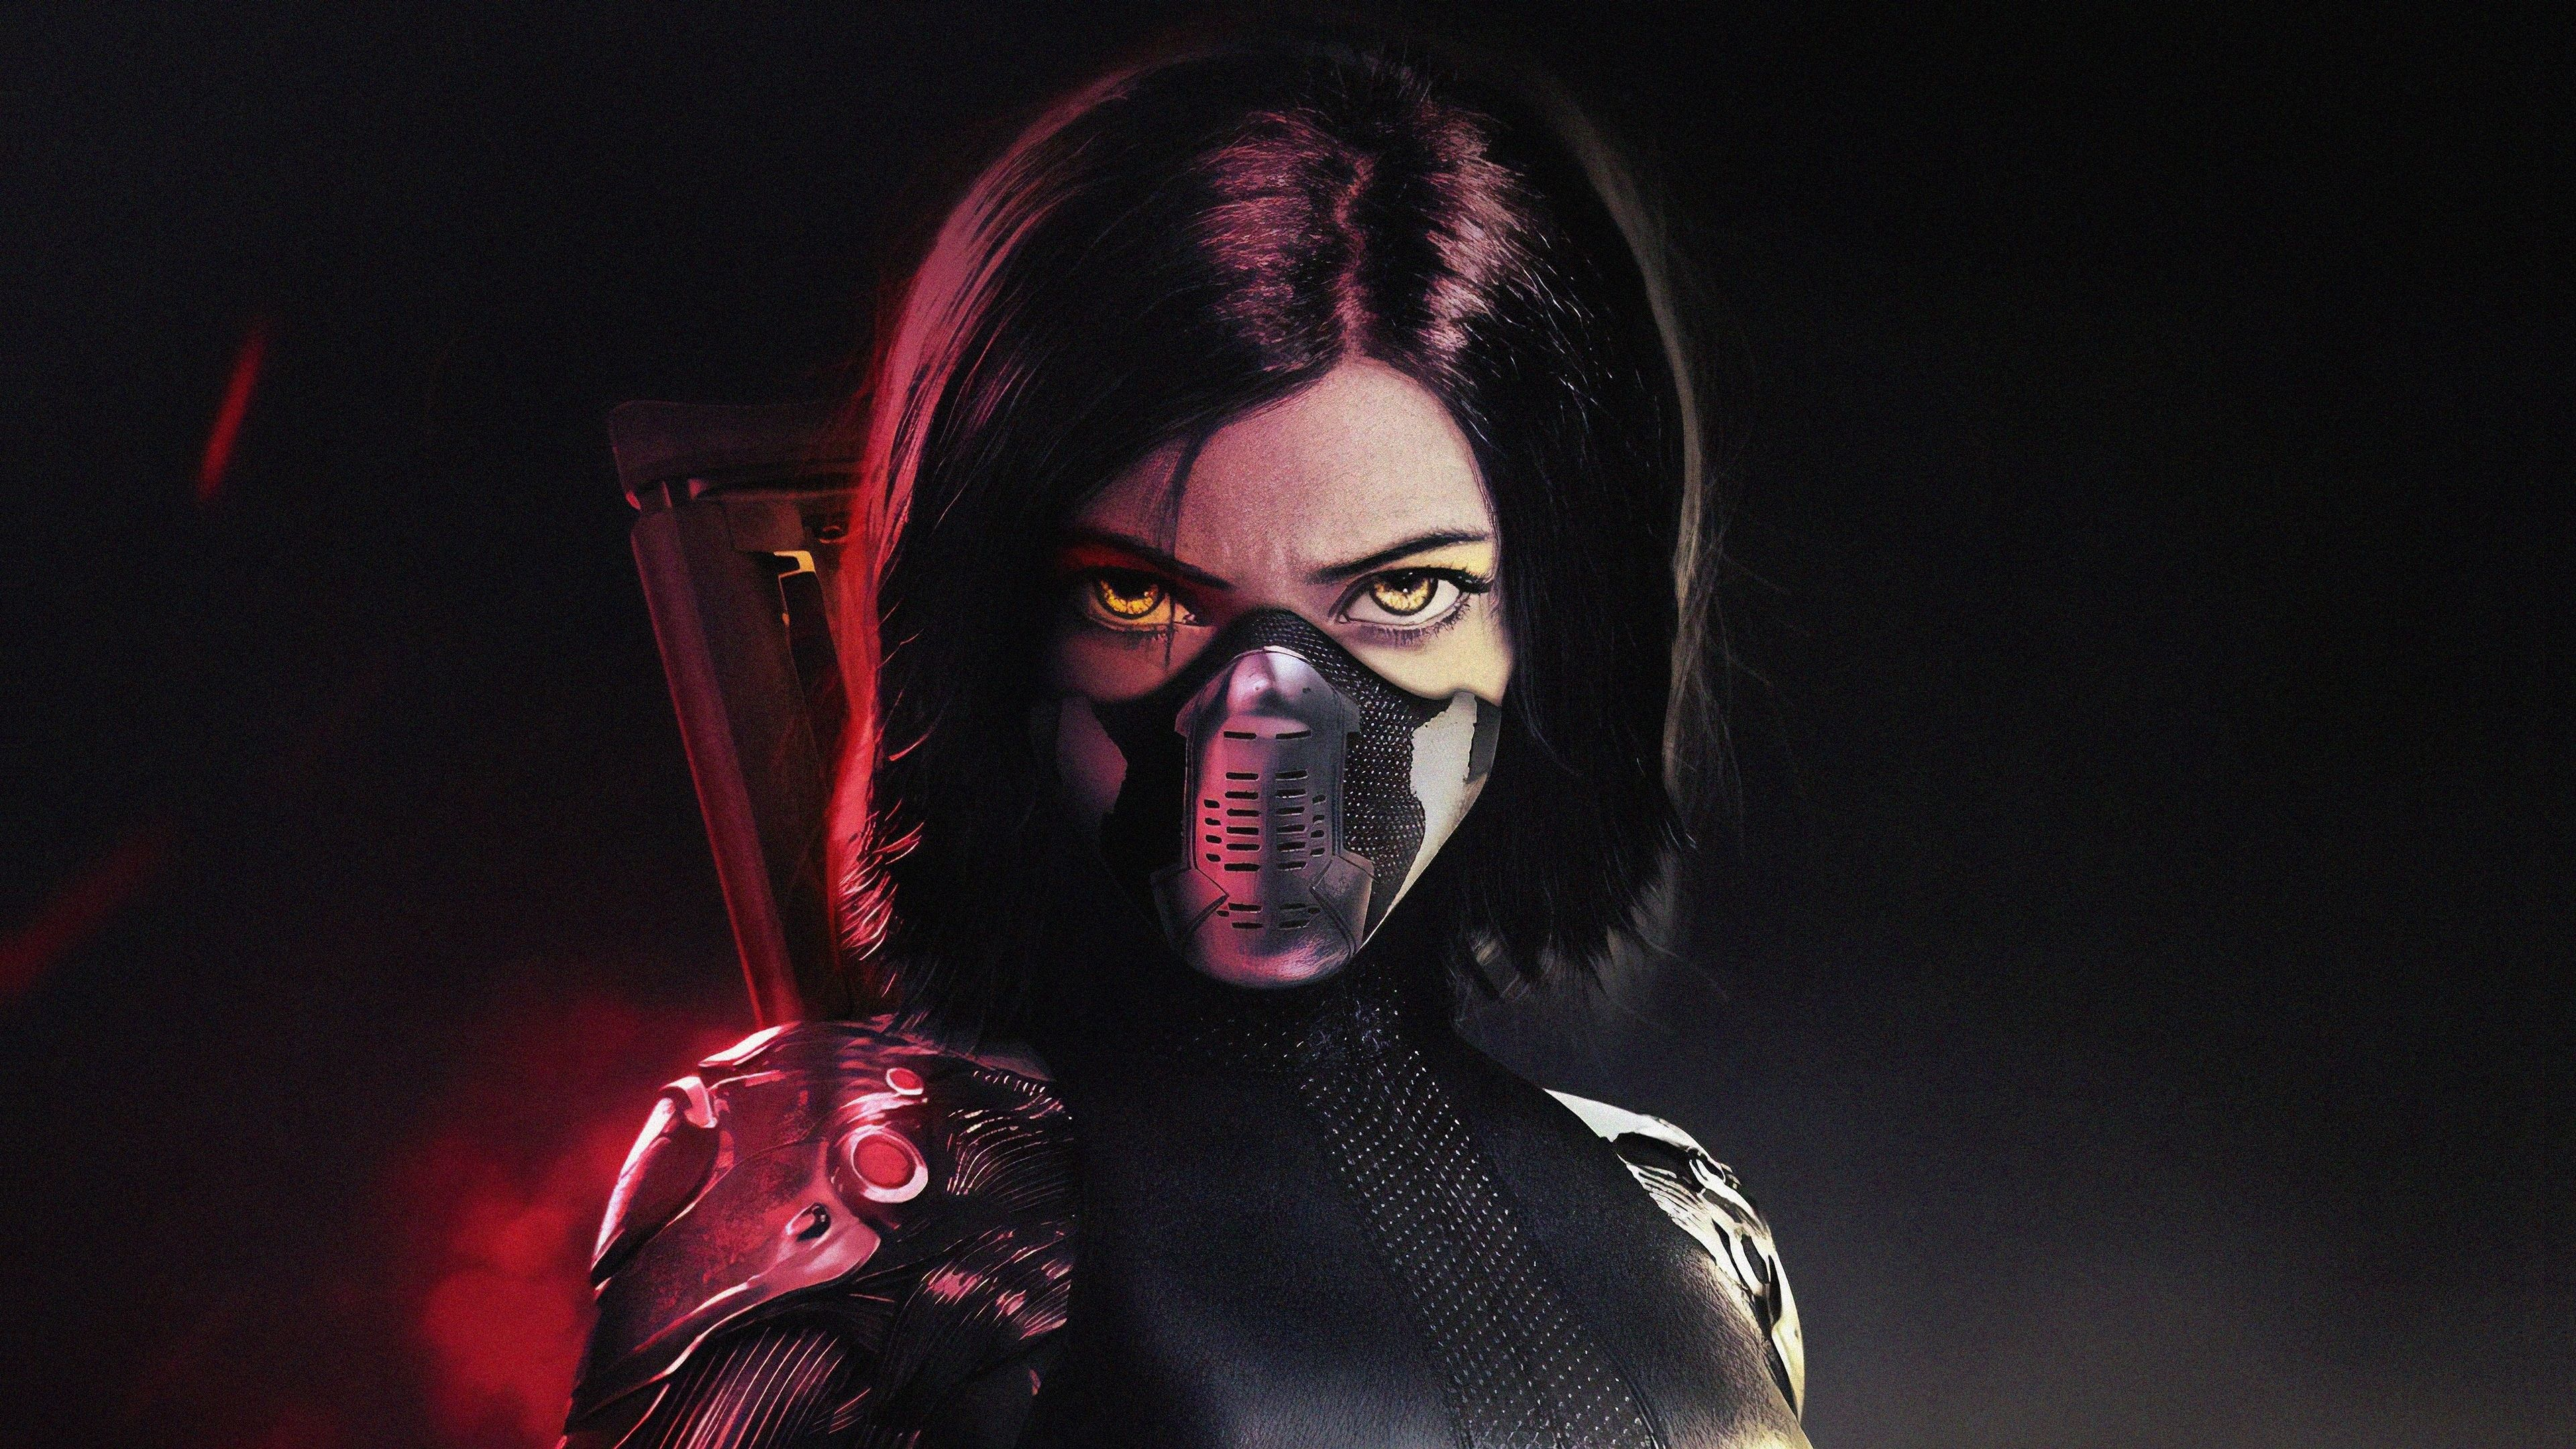 3840x2160 The Alita Battle Angel Movie 2019 Wallpaper